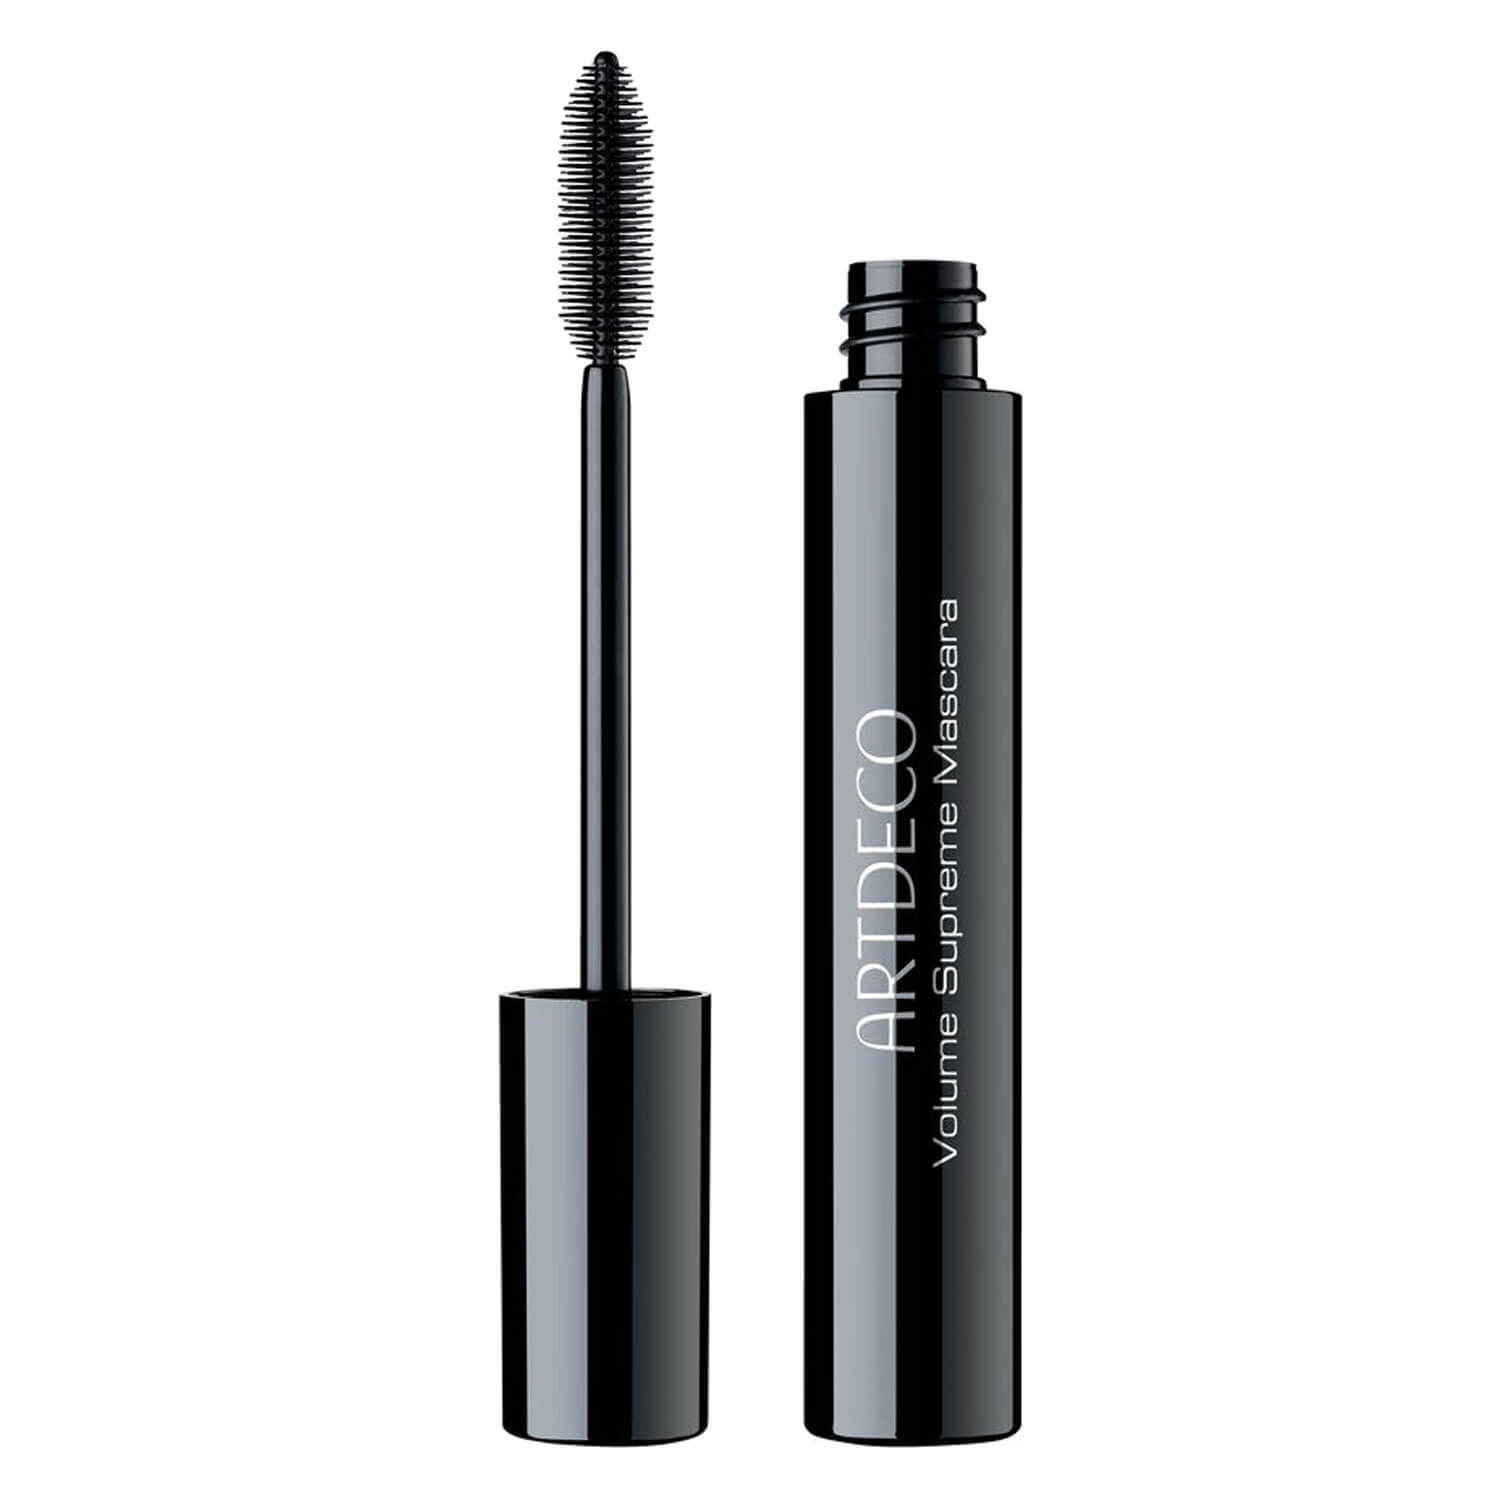 Artdeco Mascara - Volume Supreme Mascara